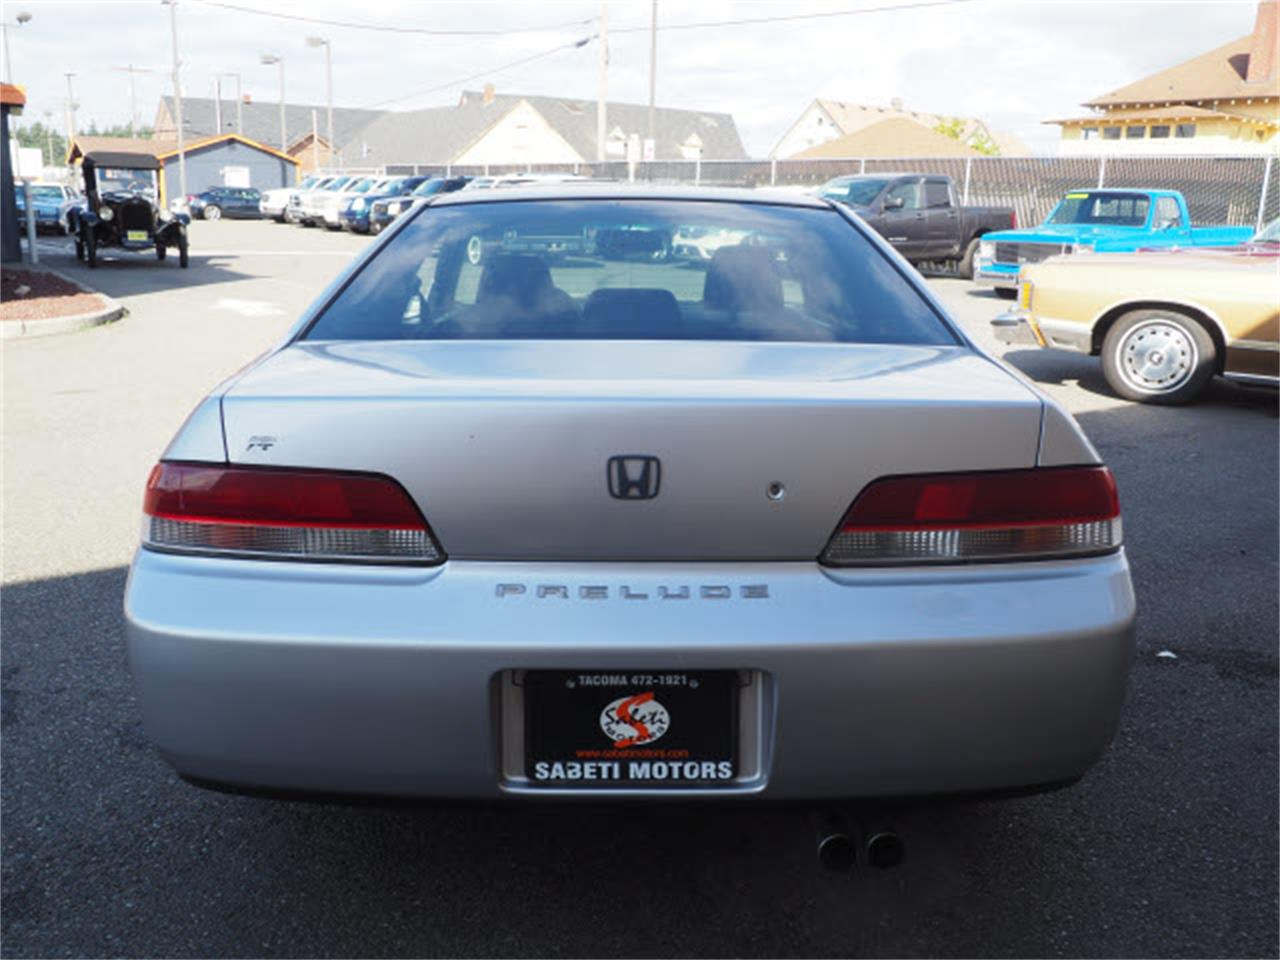 2001 Honda Prelude (CC-1263871) for sale in Tacoma, Washington